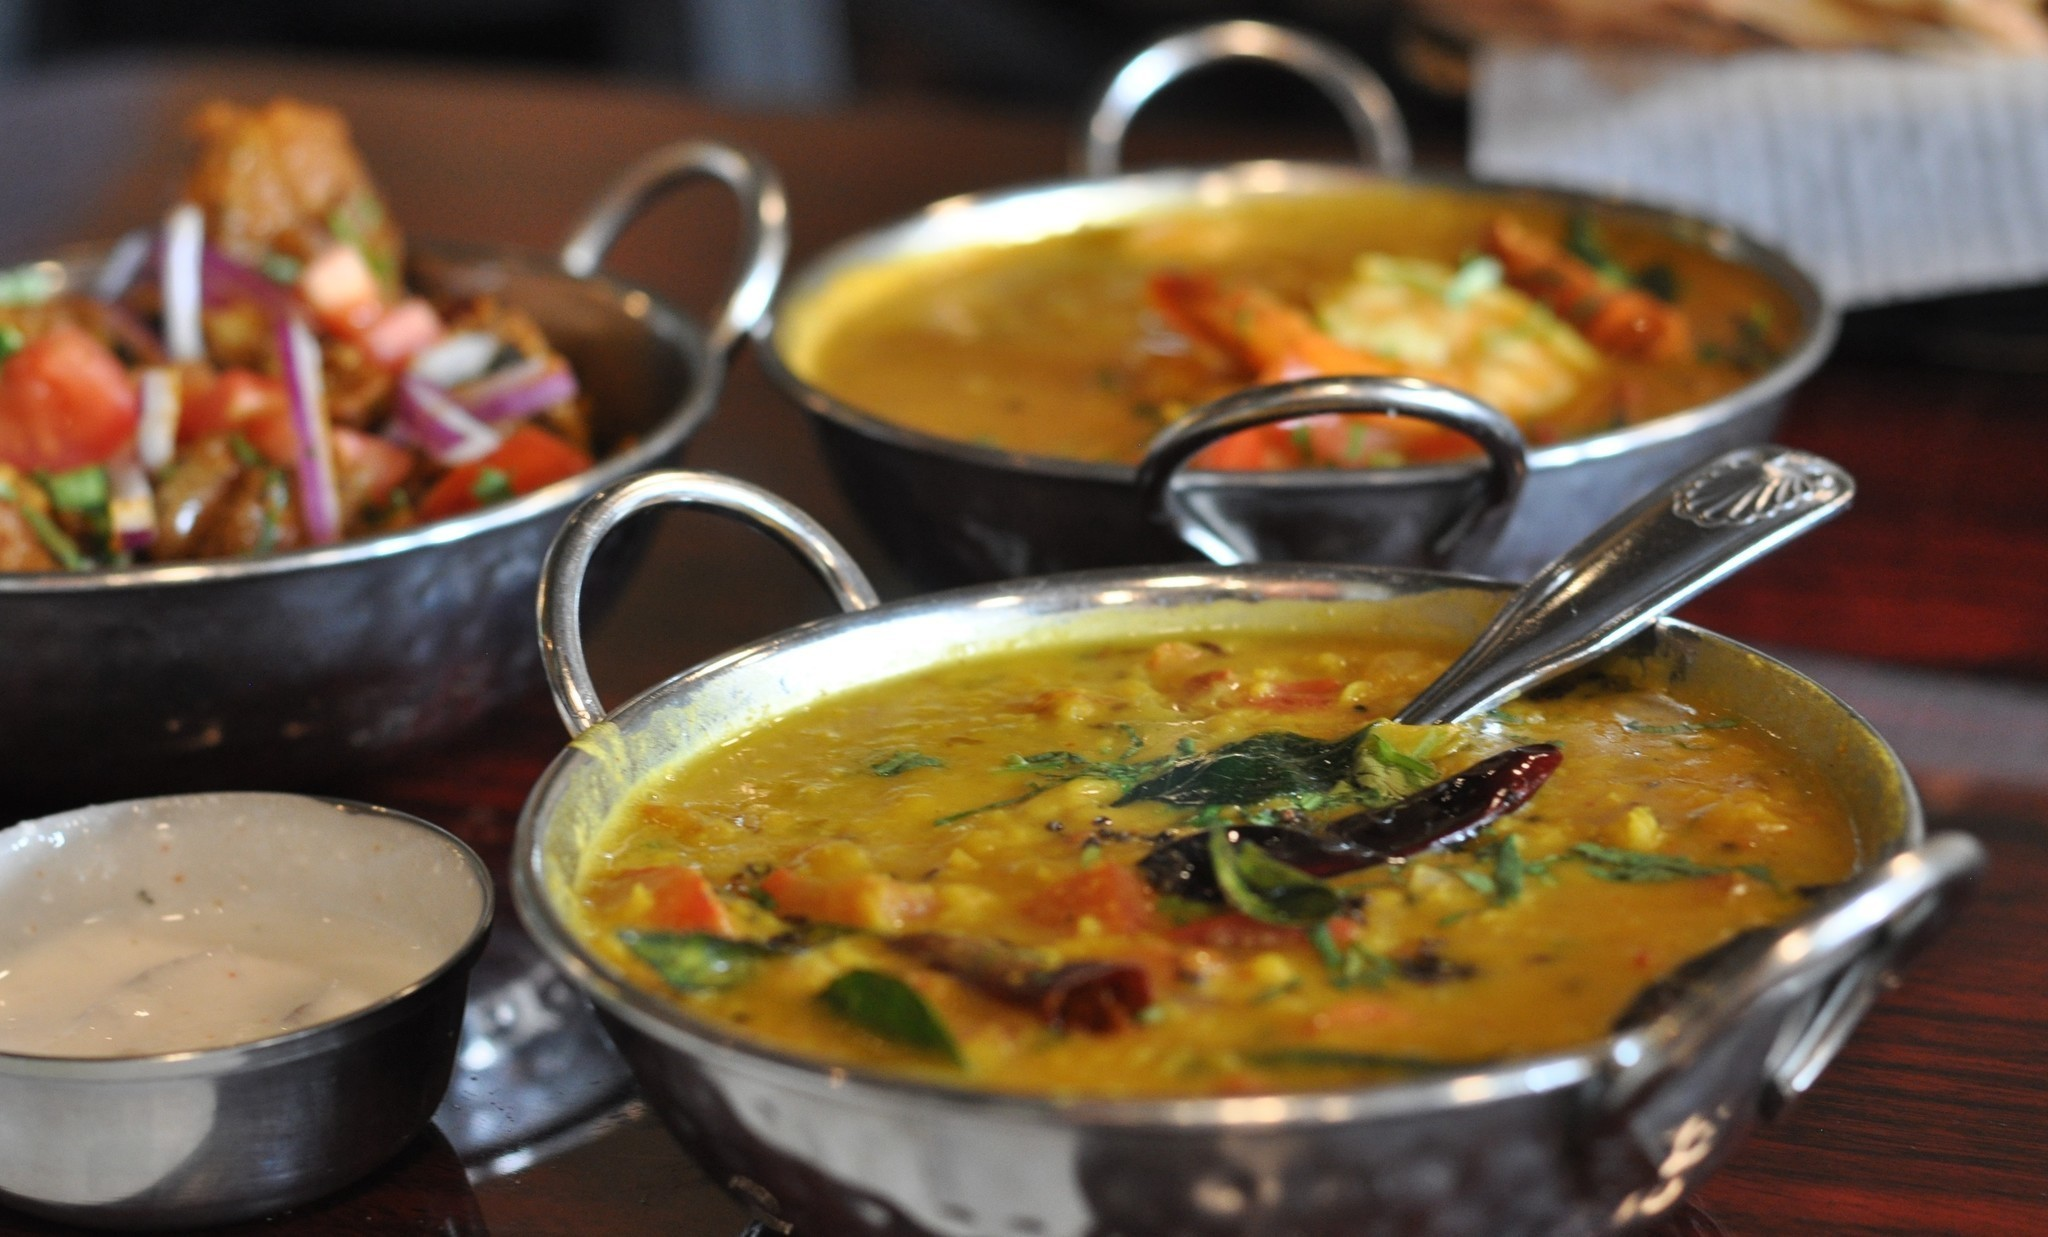 Where to get stellar south indian dishes in pasadena la for Annapurna cuisine los angeles